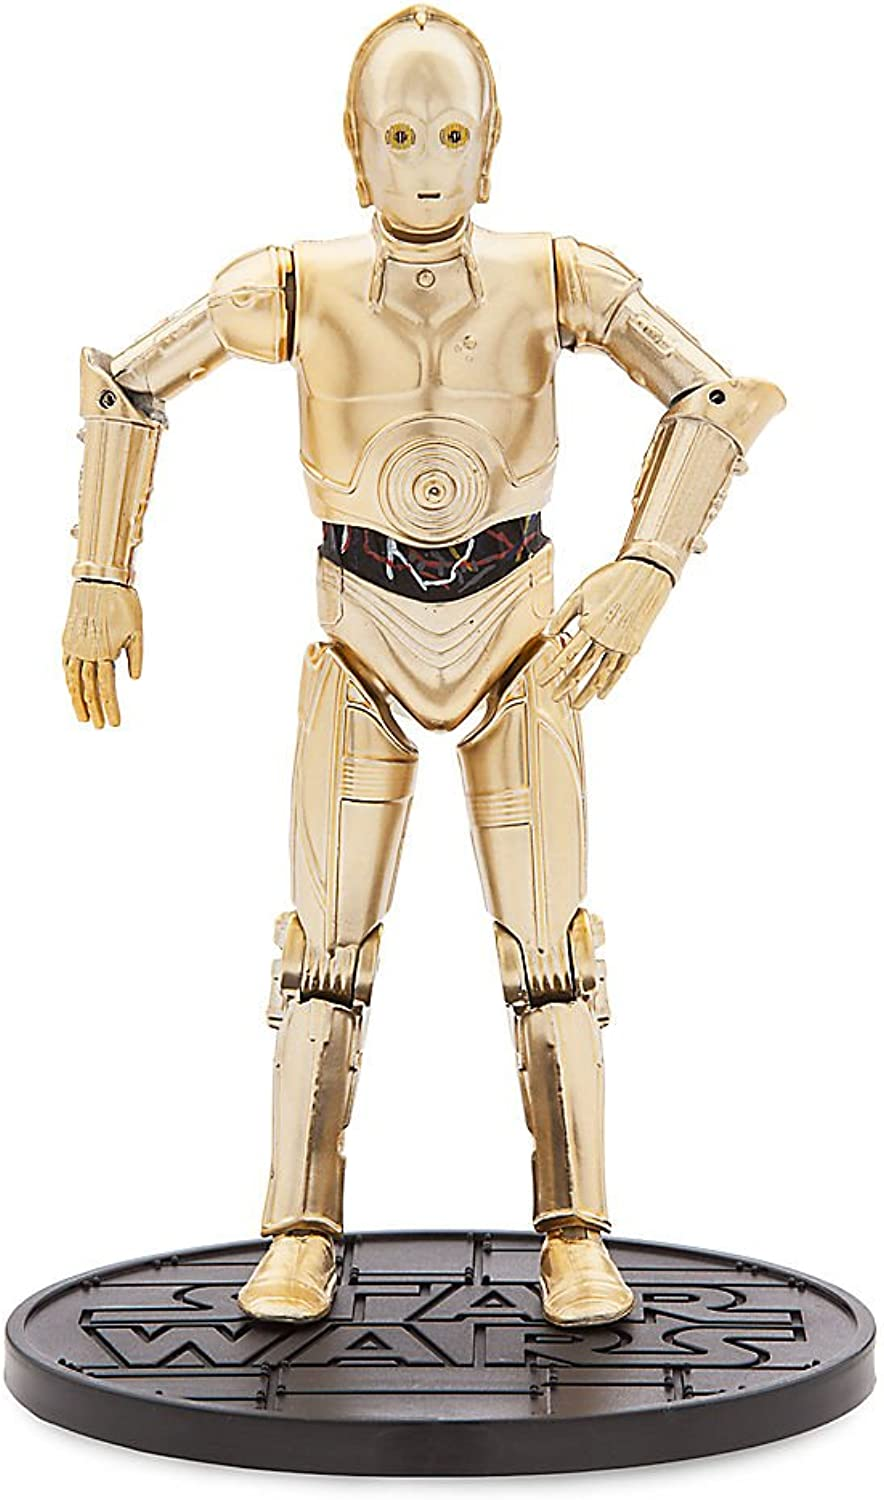 Star Wars C3PO Elite Series Die Cast Action Figure  Star Wars  The Last Jedi